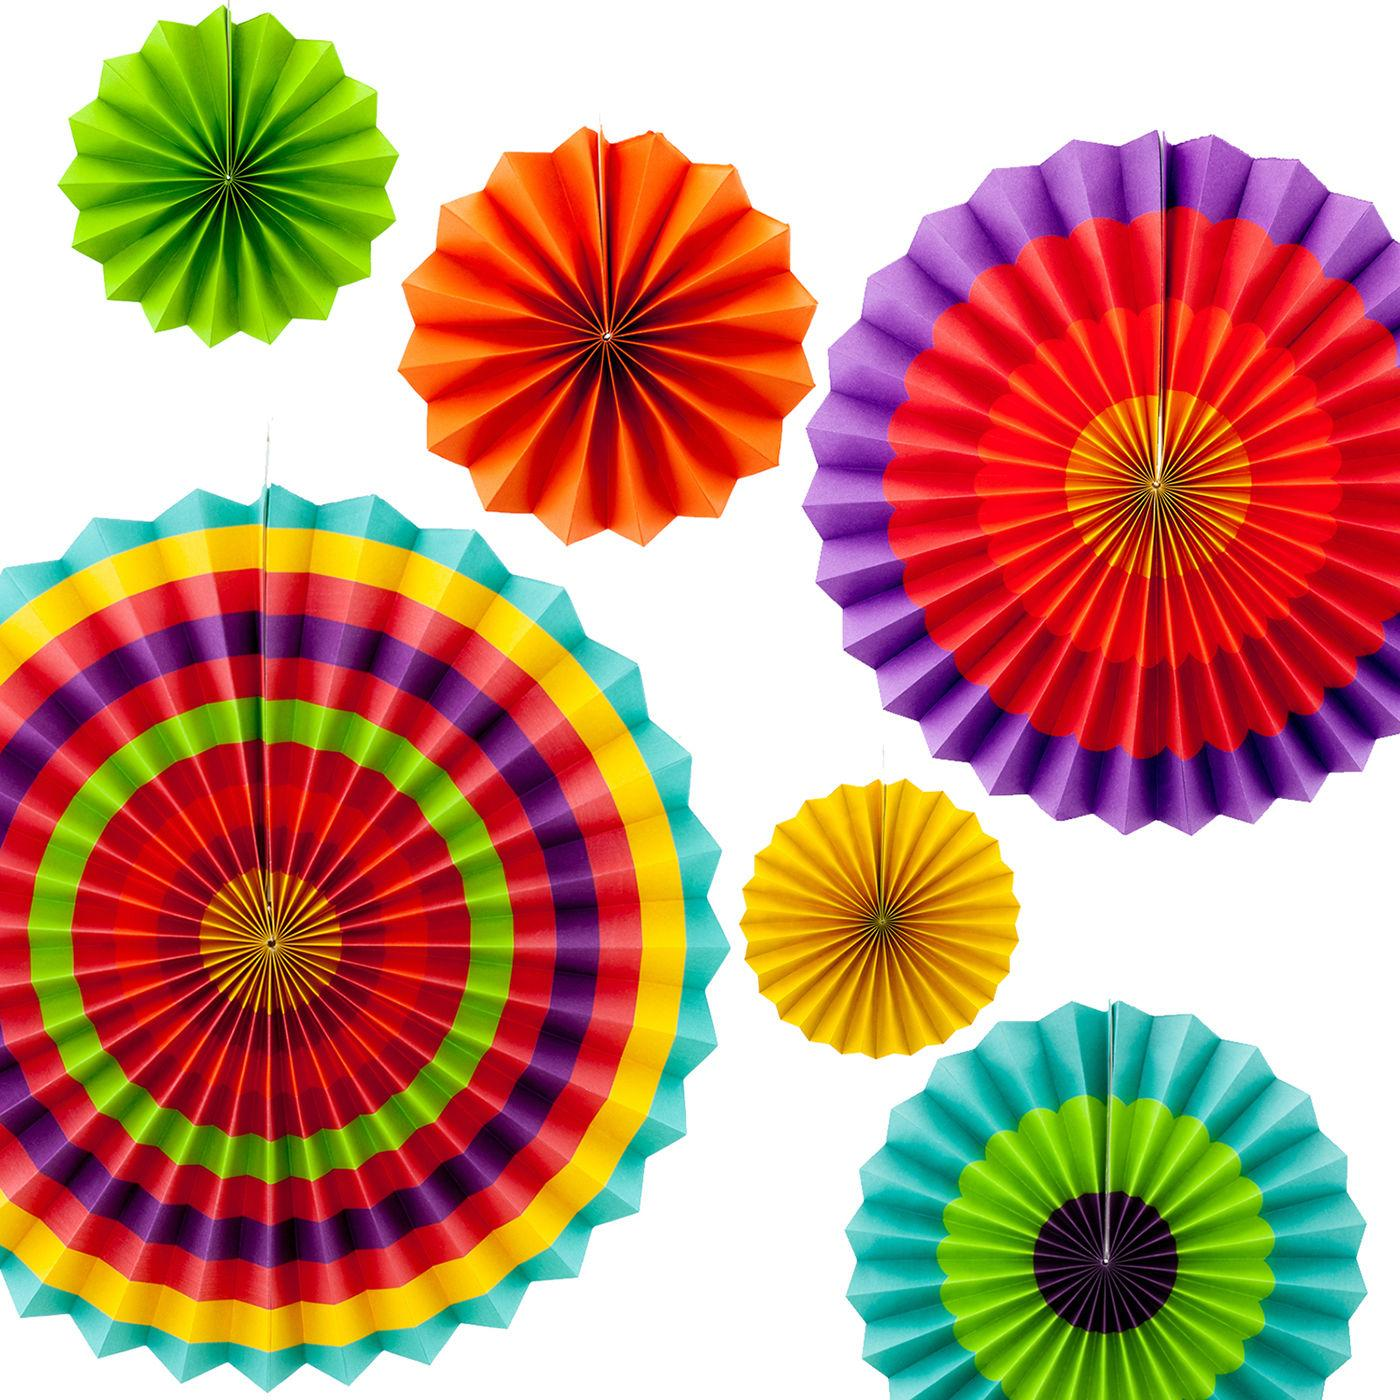 2019 Fiesta Paper Fans Decoration Ful Yellow Orange Green Cinco De Mayo Party For Party Birthday Weding From Siweexautoparts 3 66 Dhgate Com